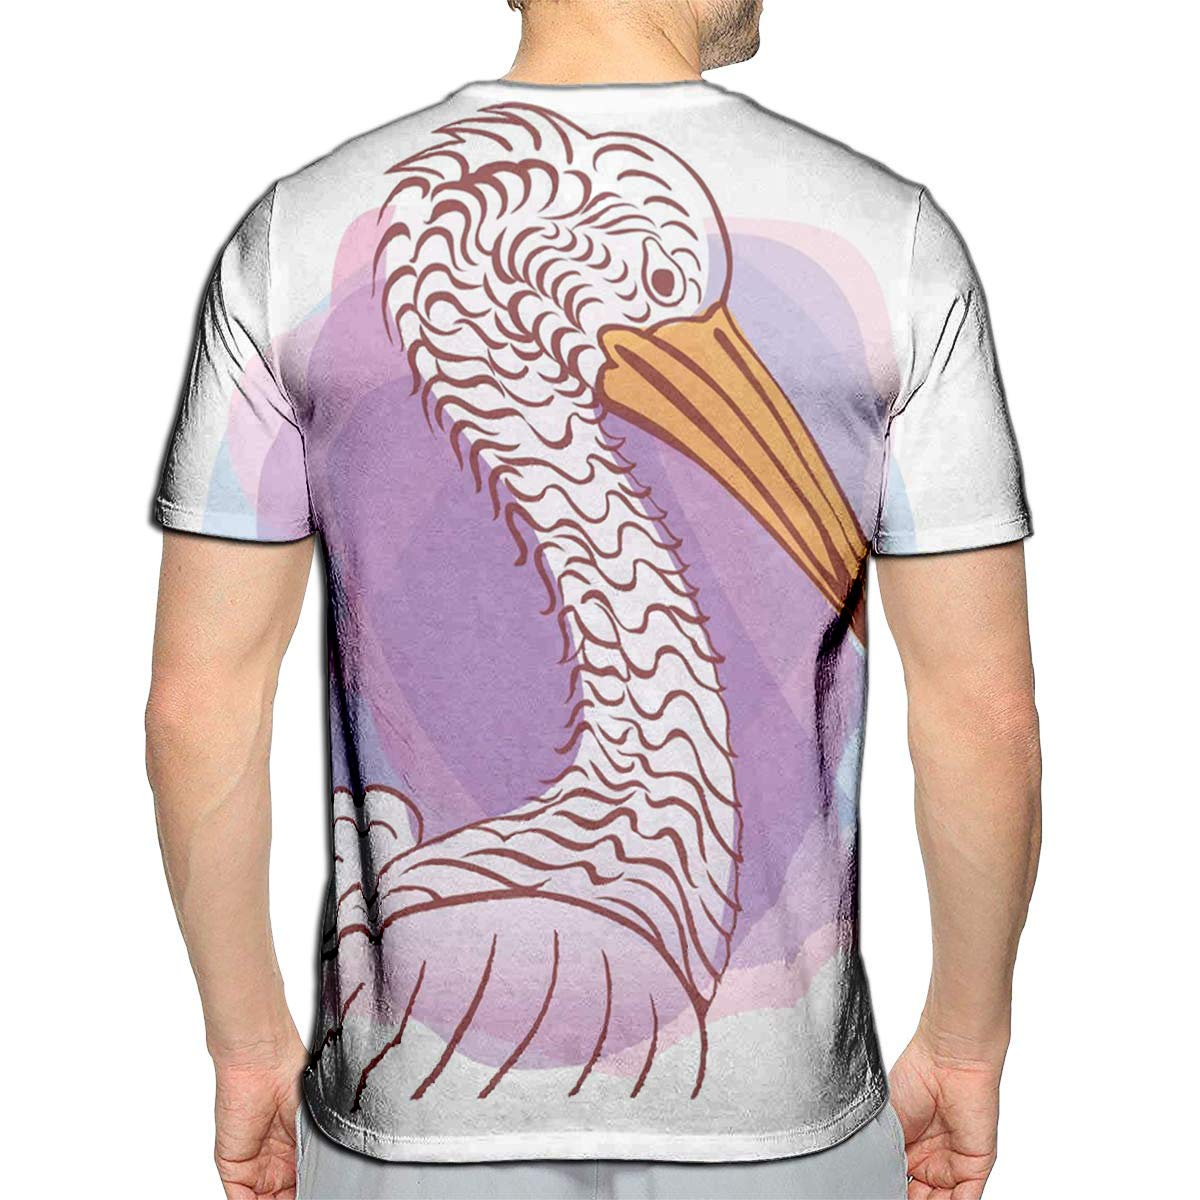 3D Printed T-Shirts Pelican Bird Sign Fldesign Hand Draw Short Sleeve Tops Tees